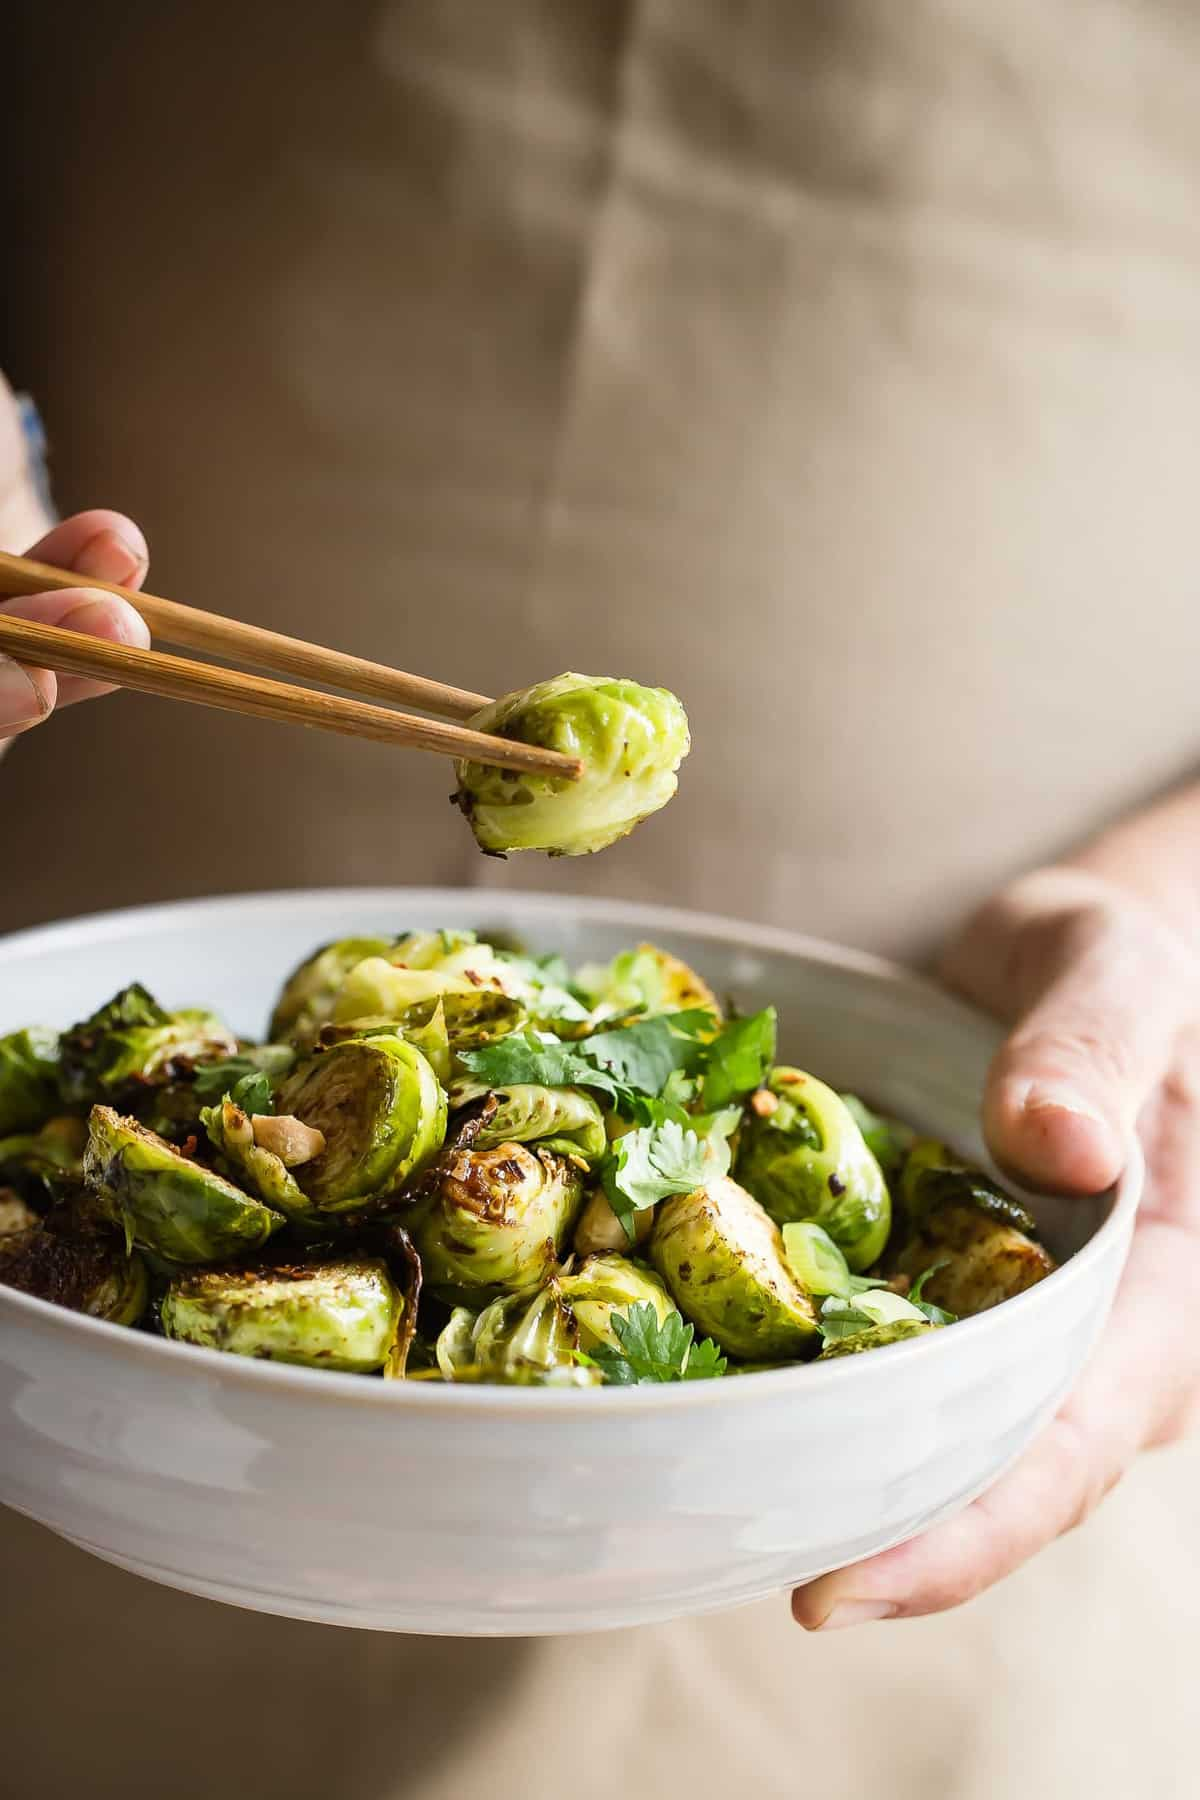 Roasted brussels sprouts tossed in Chinese five spice and hoisin sauce